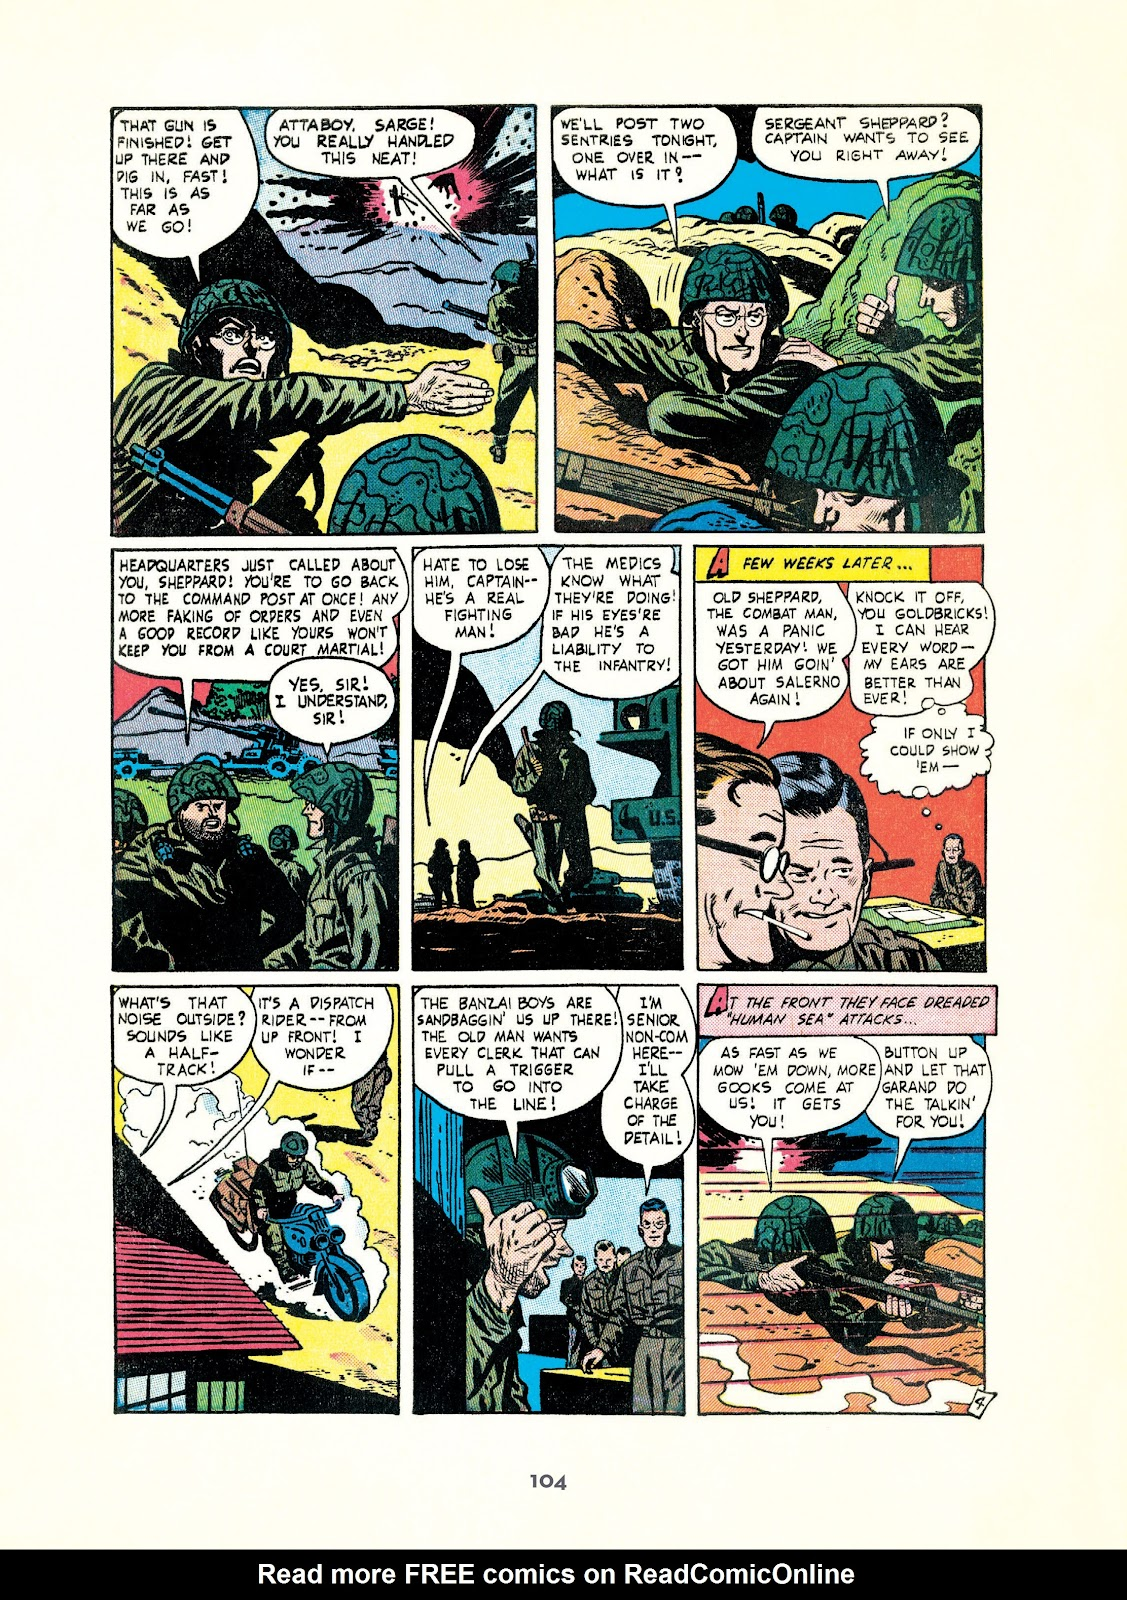 Read online Setting the Standard: Comics by Alex Toth 1952-1954 comic -  Issue # TPB (Part 2) - 5